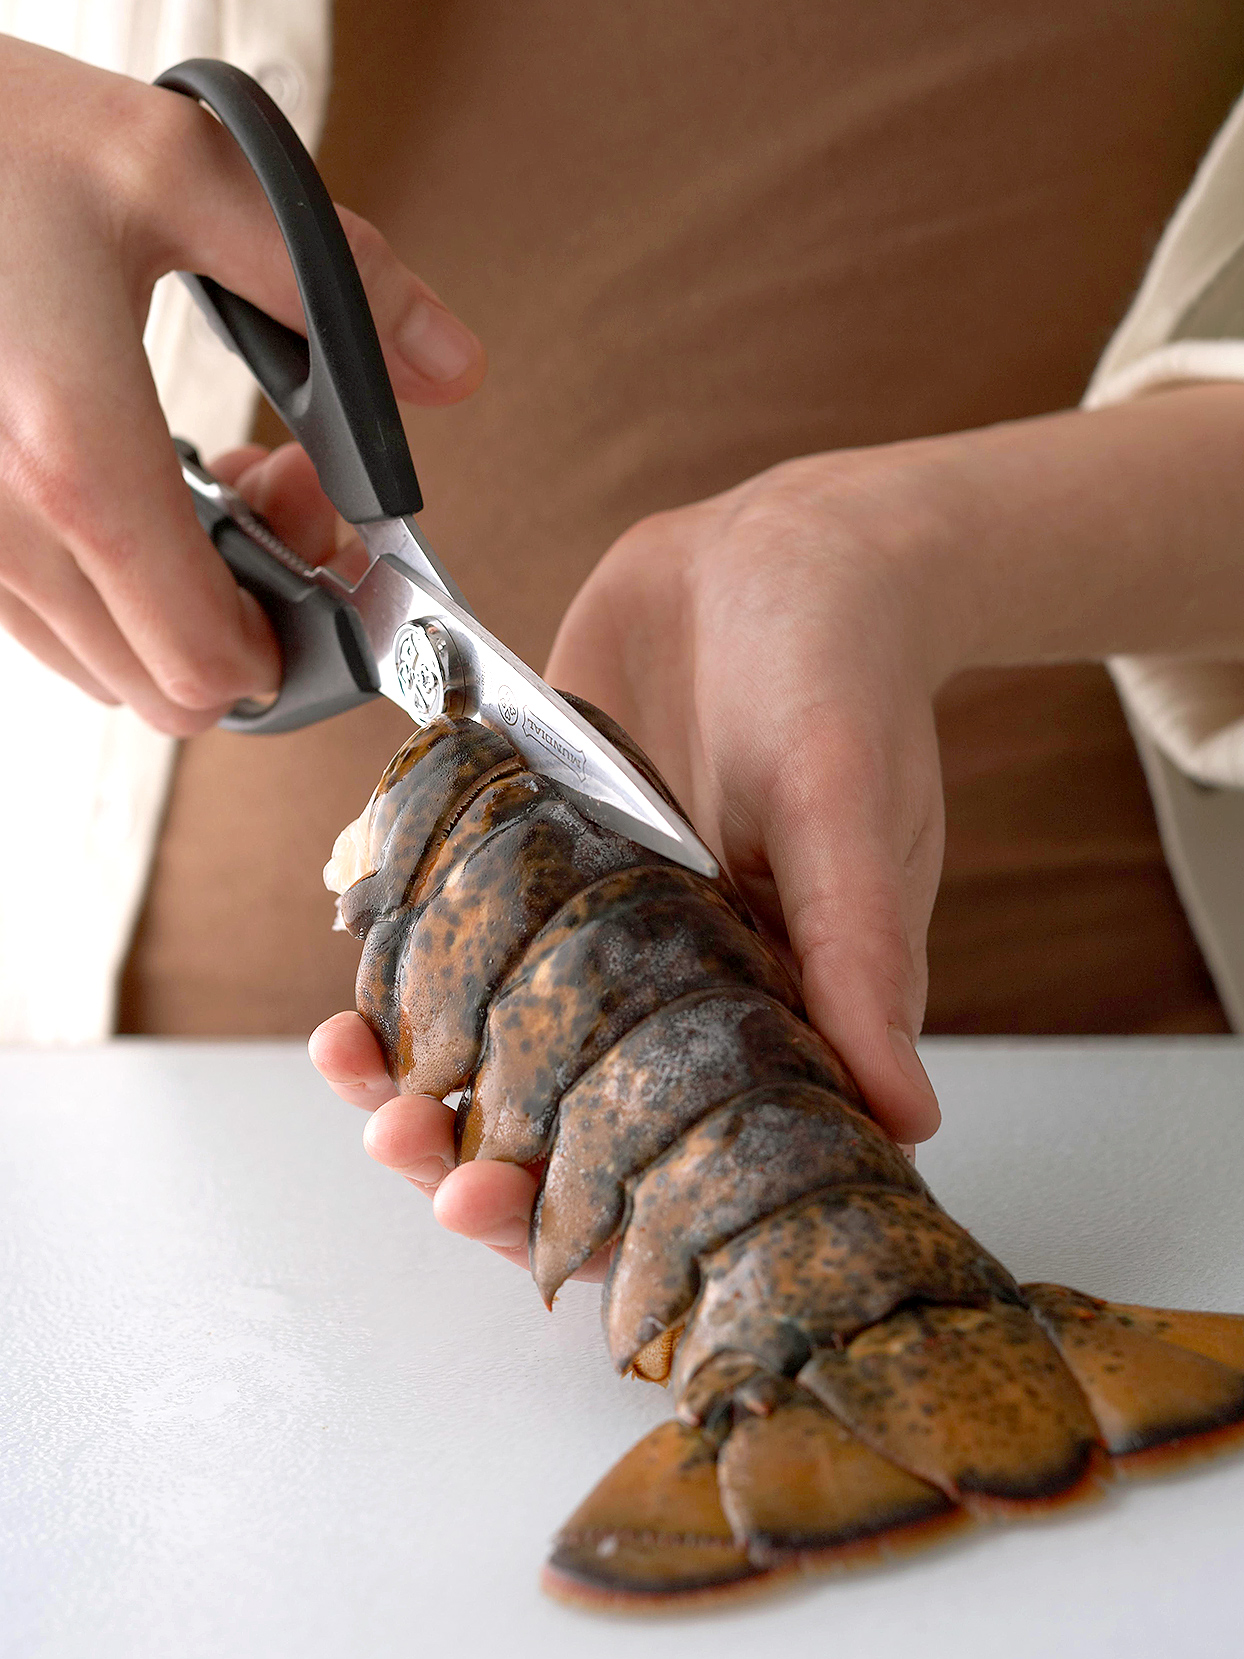 woman cutting top of lobster tail with scissors